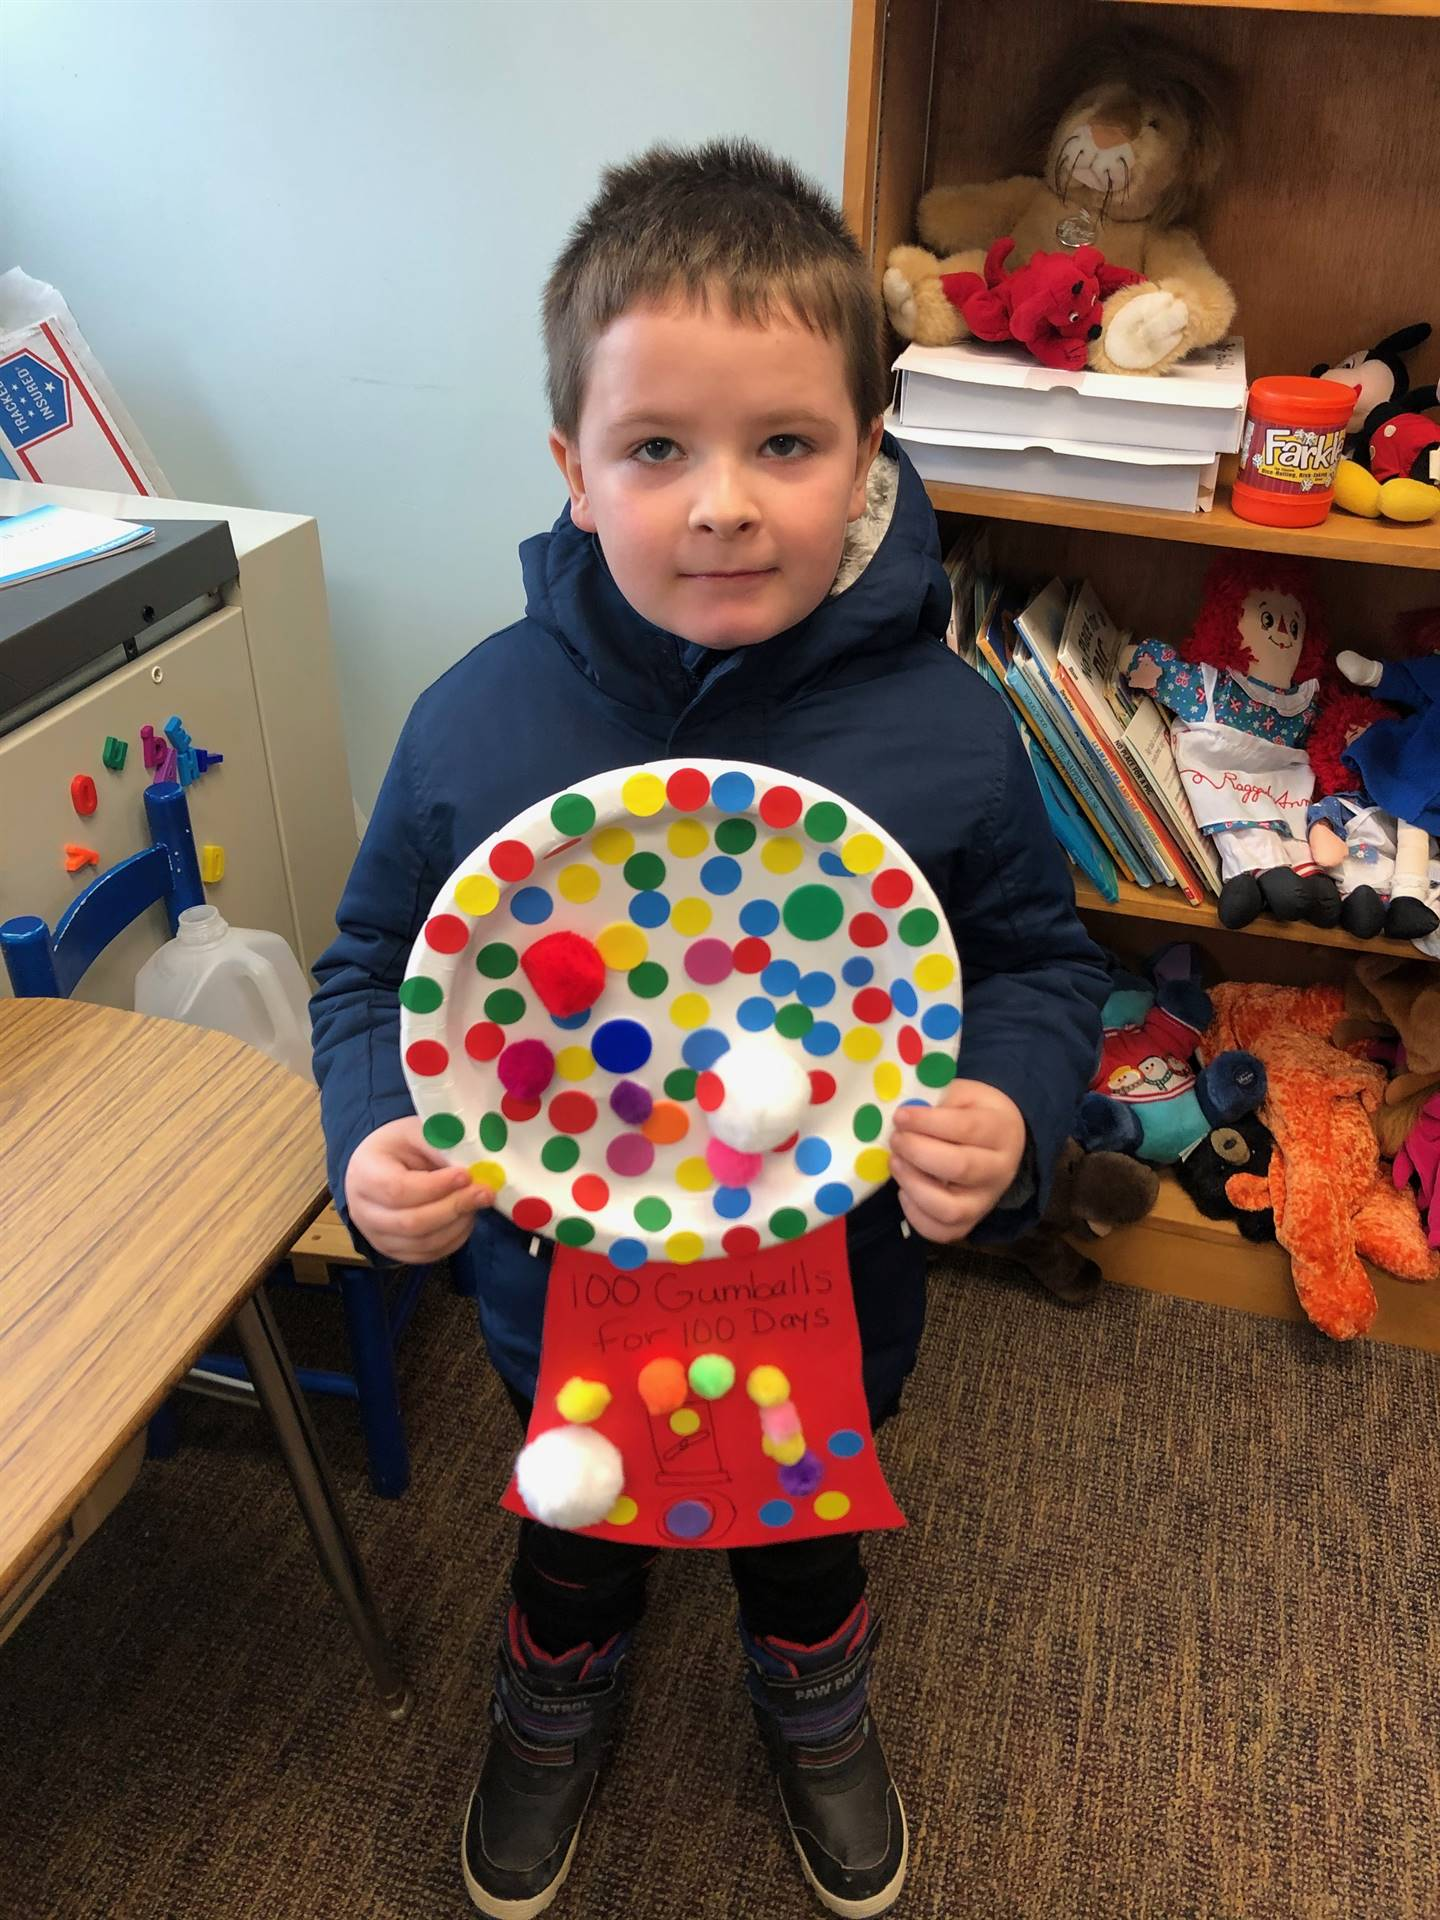 a student with a gumboil machine project